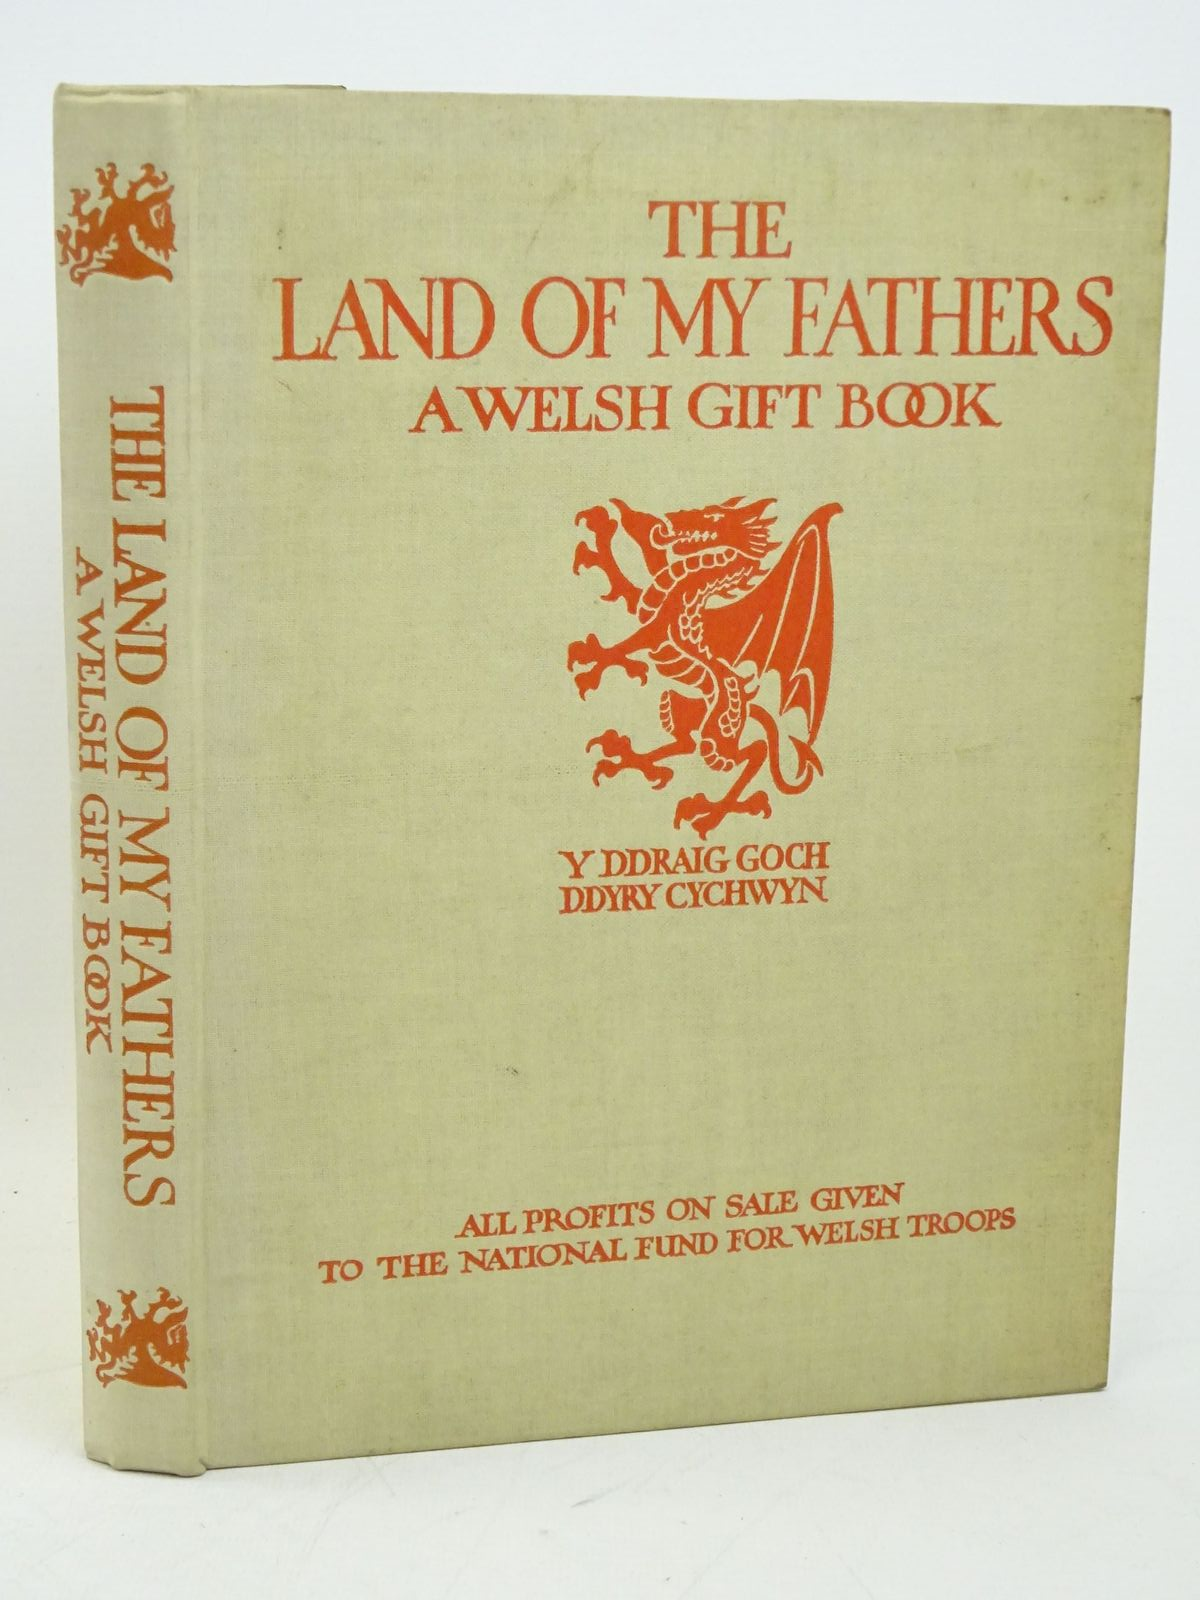 Photo of THE LAND OF MY FATHERS written by Jones, W. Lewis Geoffrey of Monmouth, Watson, William Cambrensis, Giraldus et al, illustrated by Williams, Christopher John, Augustus Brangwyn, Frank et al., published by Hodder & Stoughton (STOCK CODE: 1317977)  for sale by Stella & Rose's Books